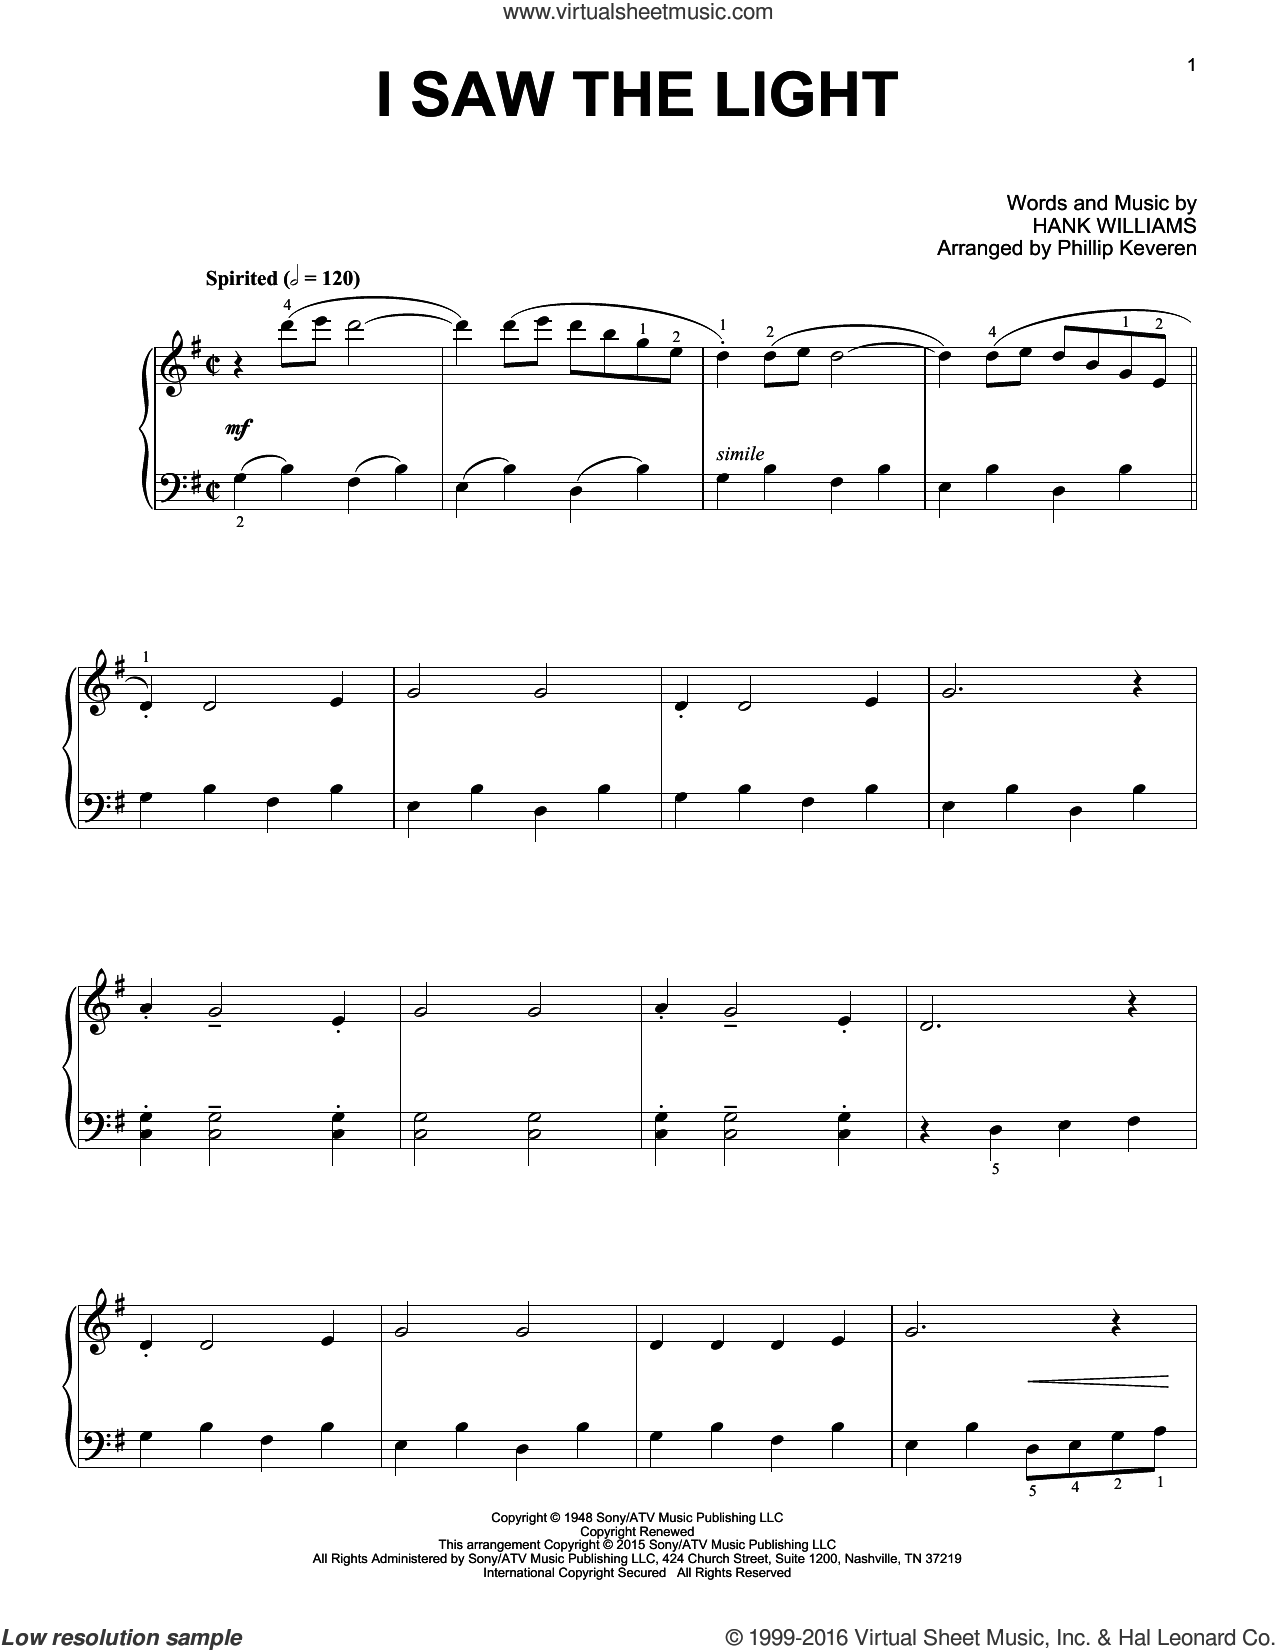 I Saw The Light sheet music for piano solo by Hank Williams and Phillip Keveren, intermediate skill level